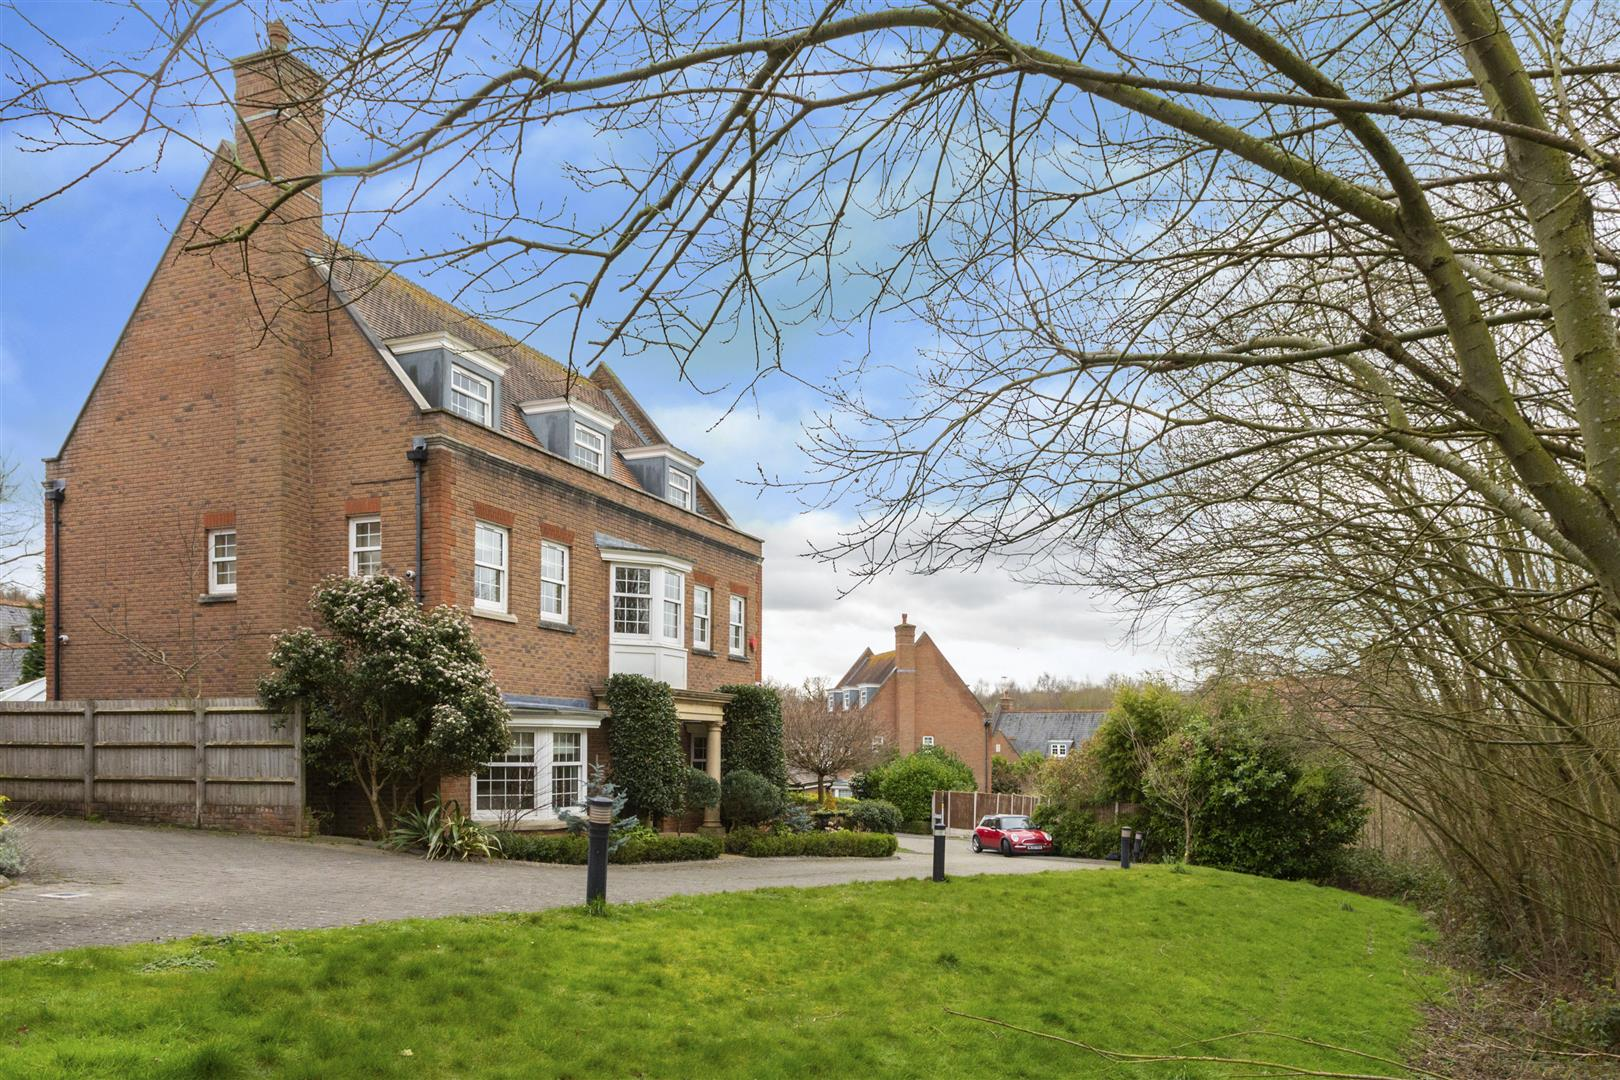 Hanover Place, Warley, Brentwood